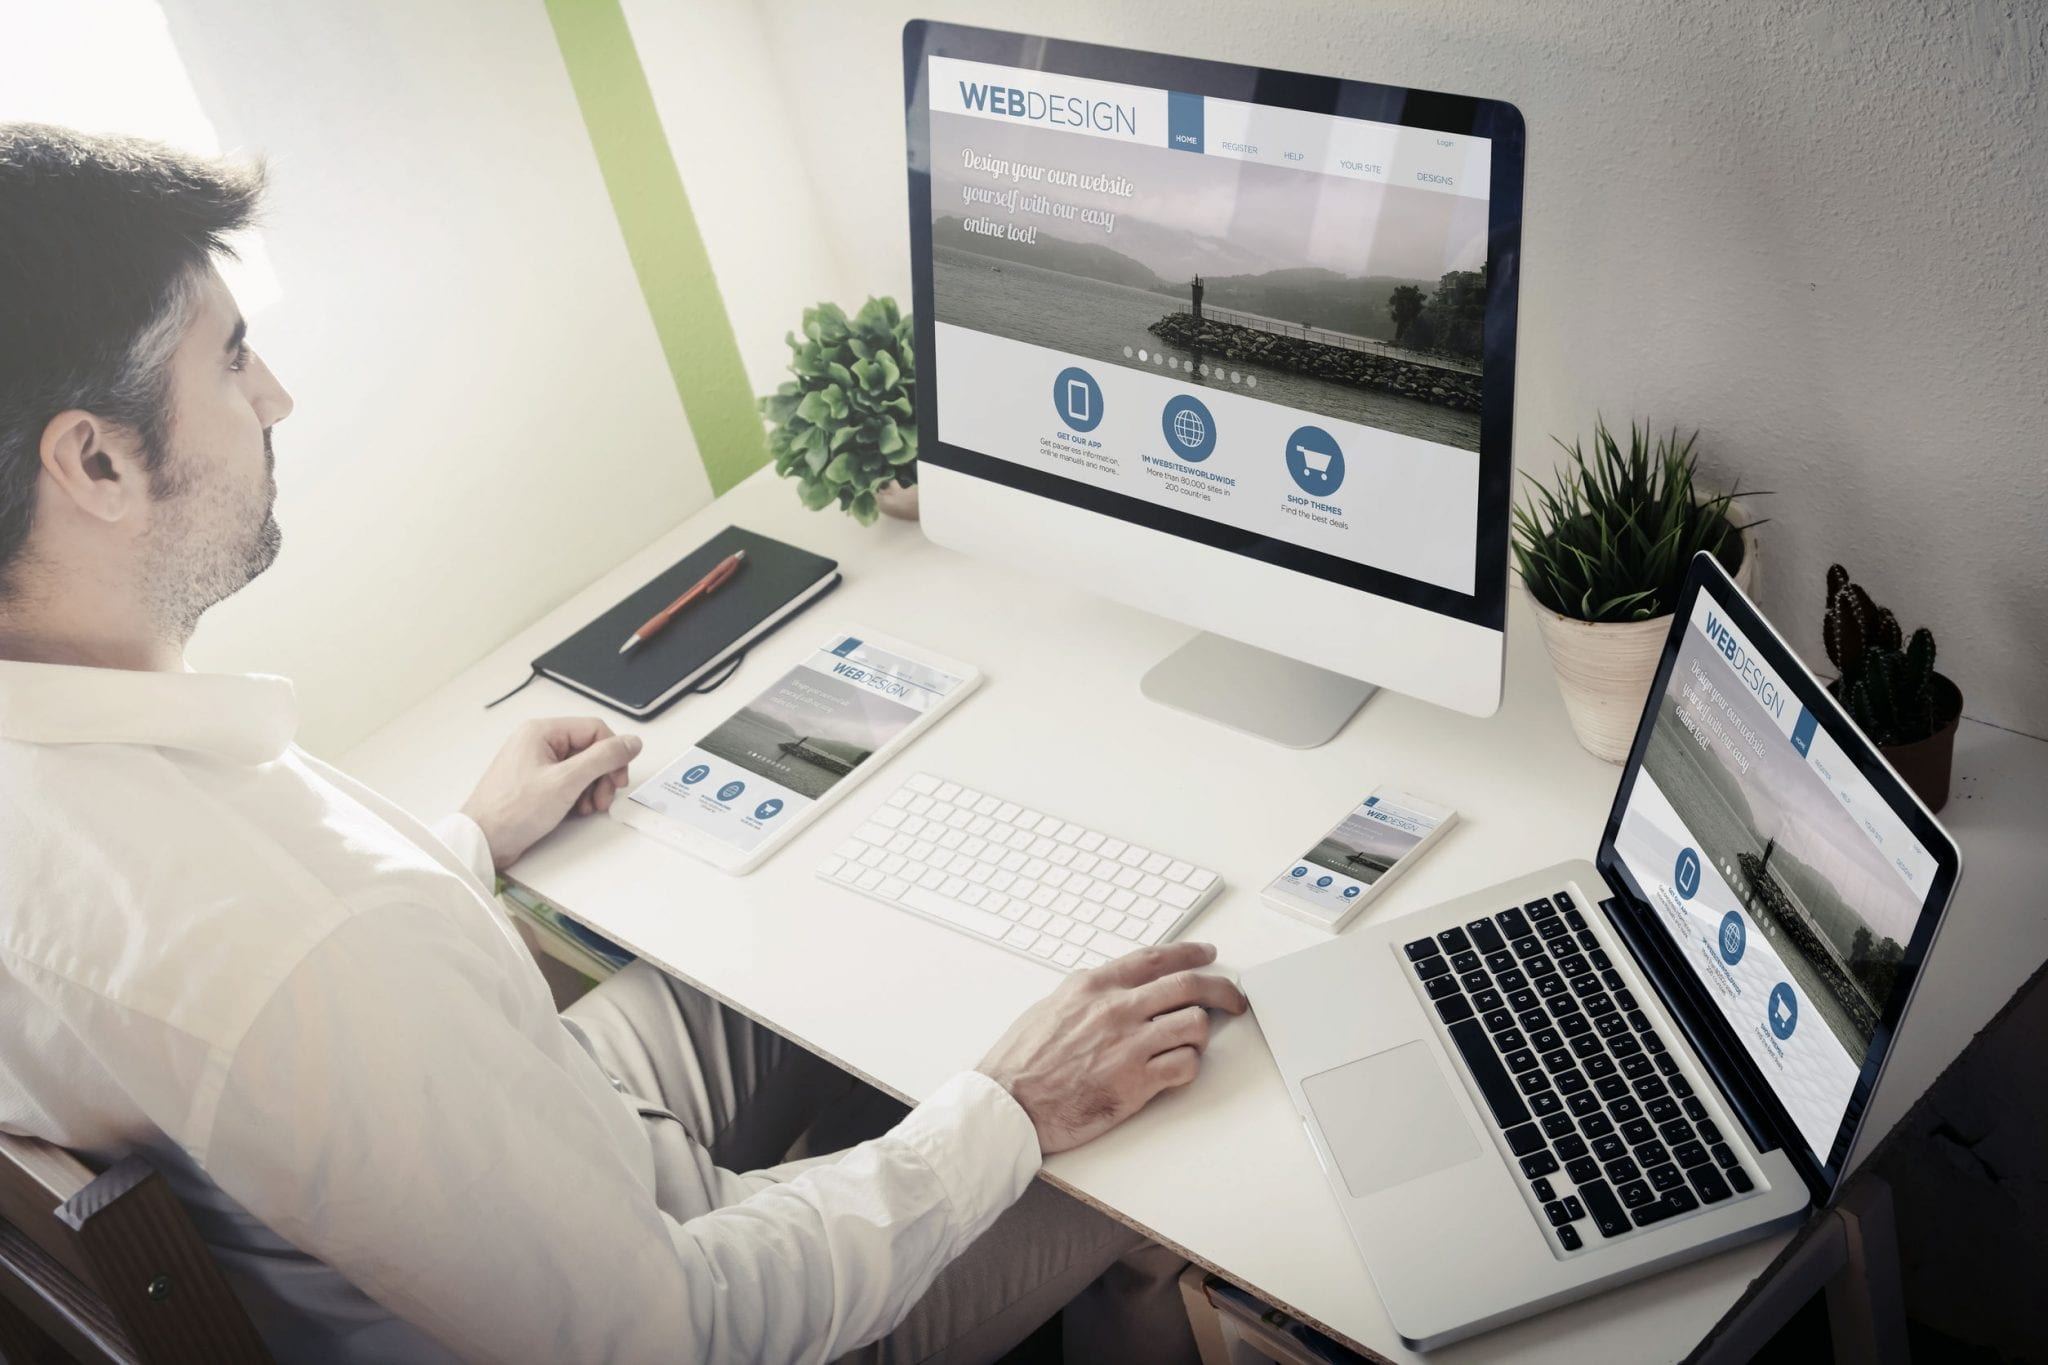 5 Things You Can Do To Make Your Website Responsive And Mobile-Friendly